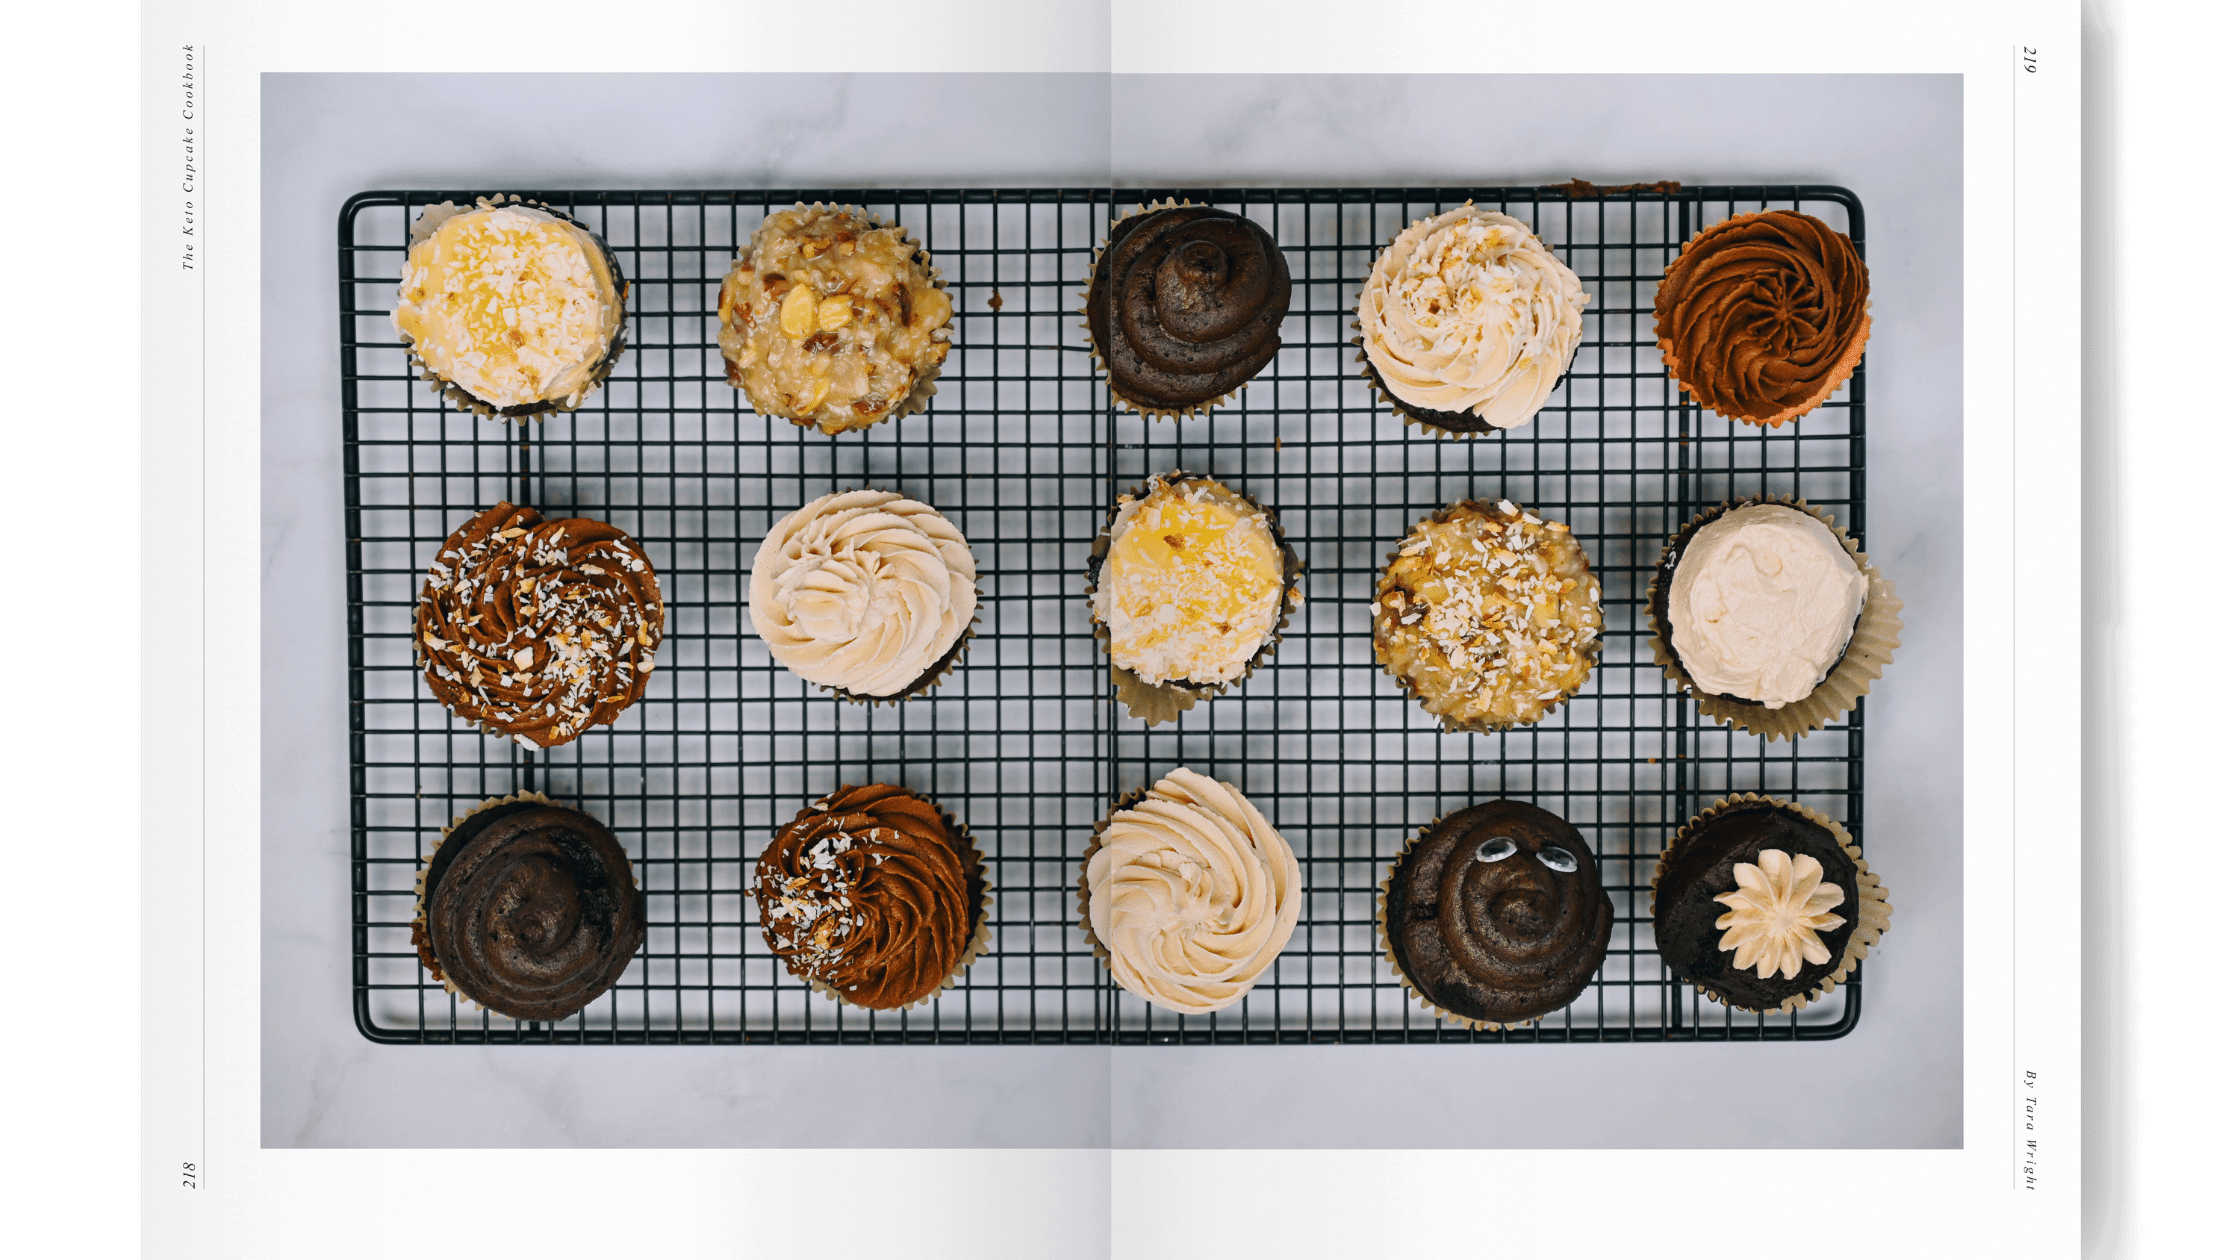 keto cupcake cookbook with 12 keto cupcakes on a cooling rack